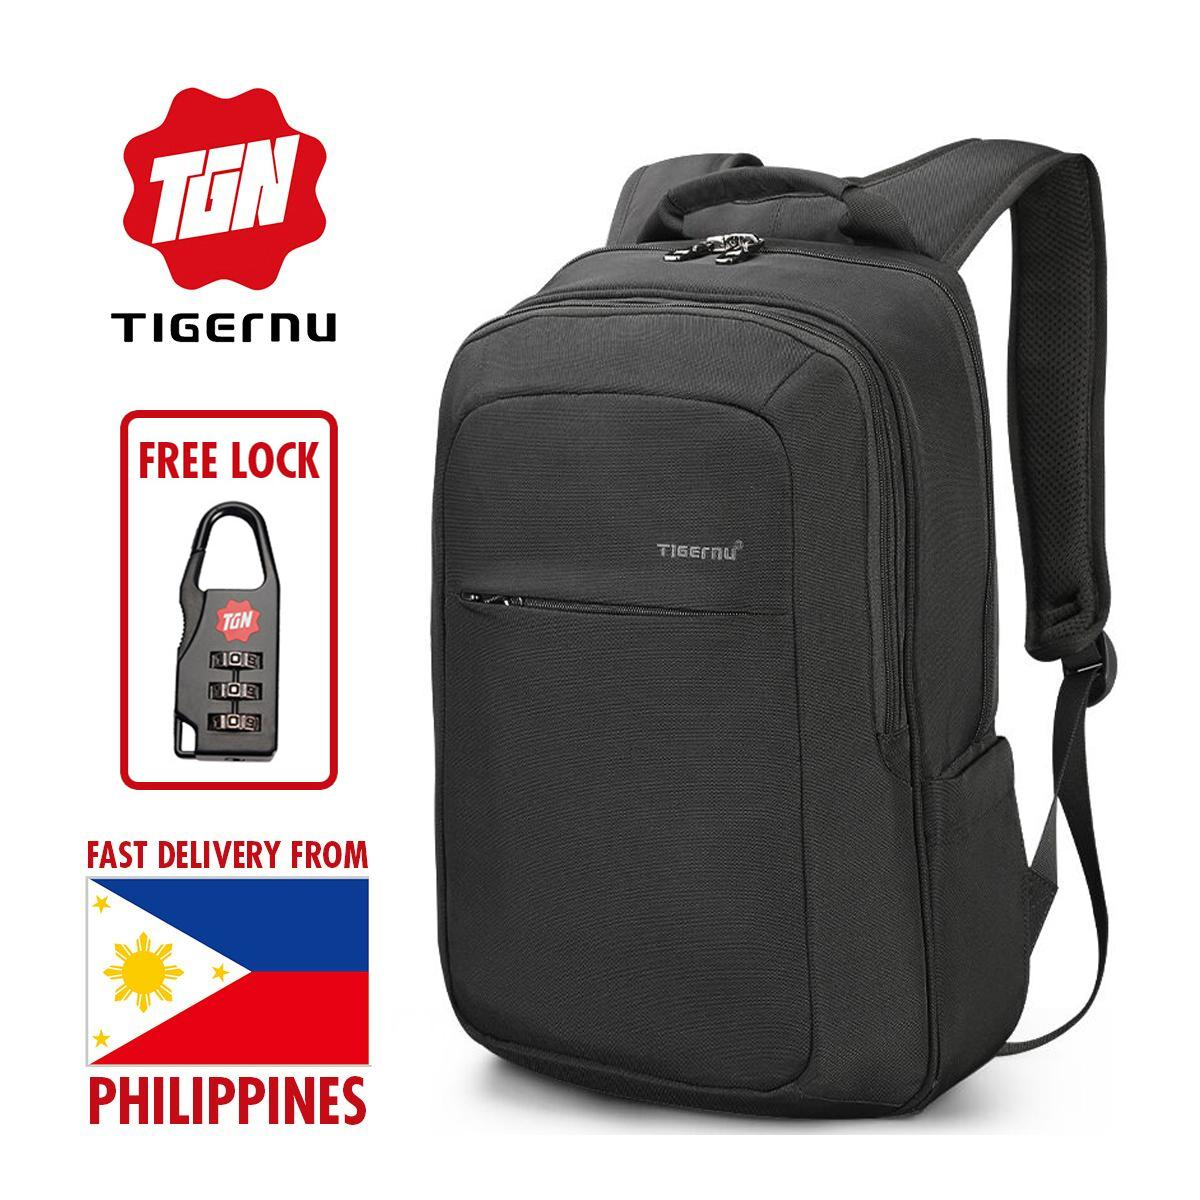 4bf7e0a3c Laptop Backpacks for sale - Computer Backpacks online brands, prices &  reviews in Philippines | Lazada.com.ph